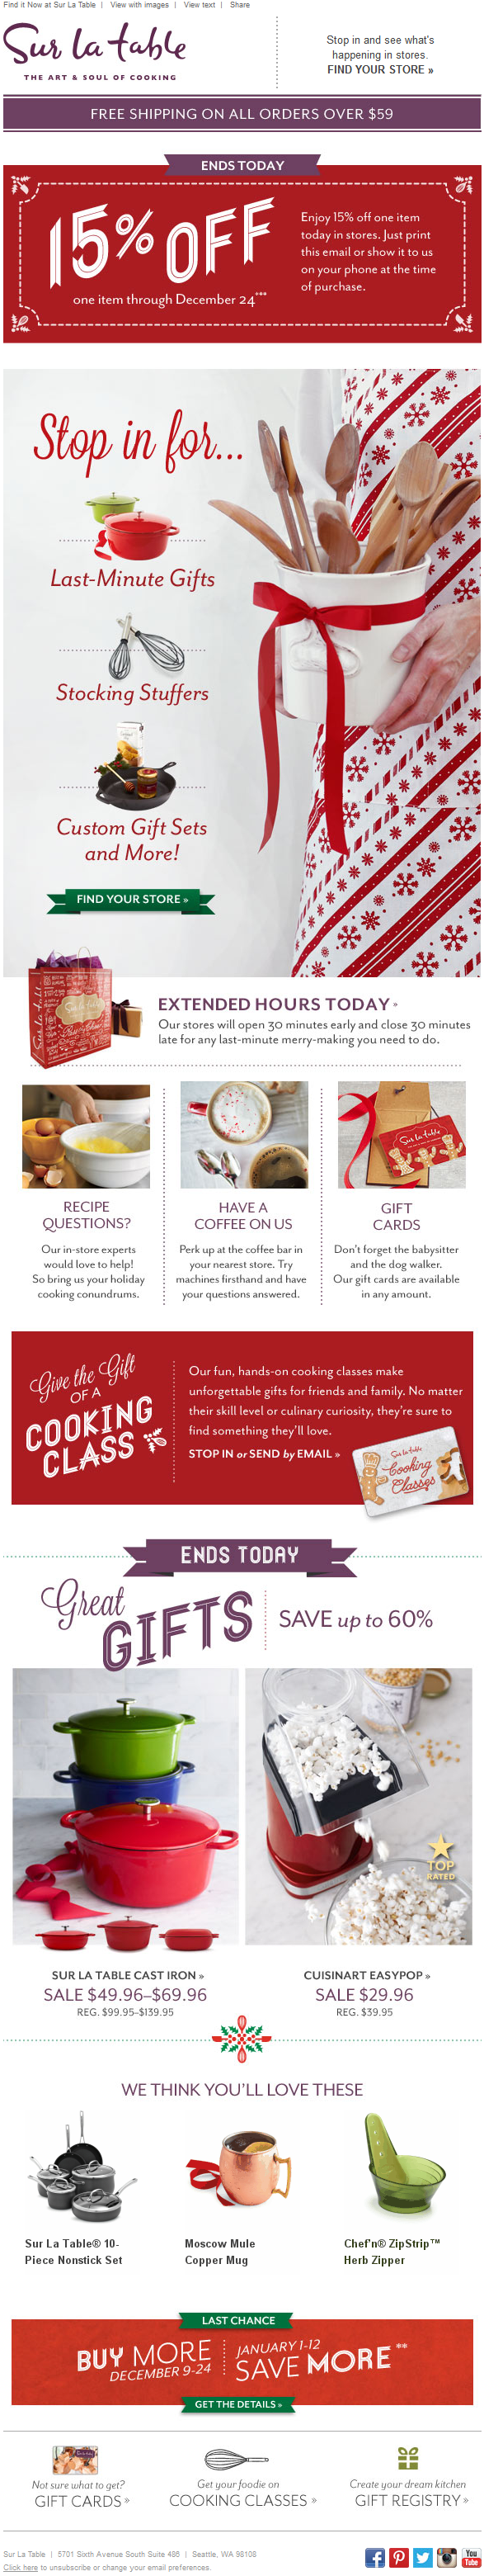 Sur La Table   Holiday Coupon For In Store Purchase; Extended Store Hours (